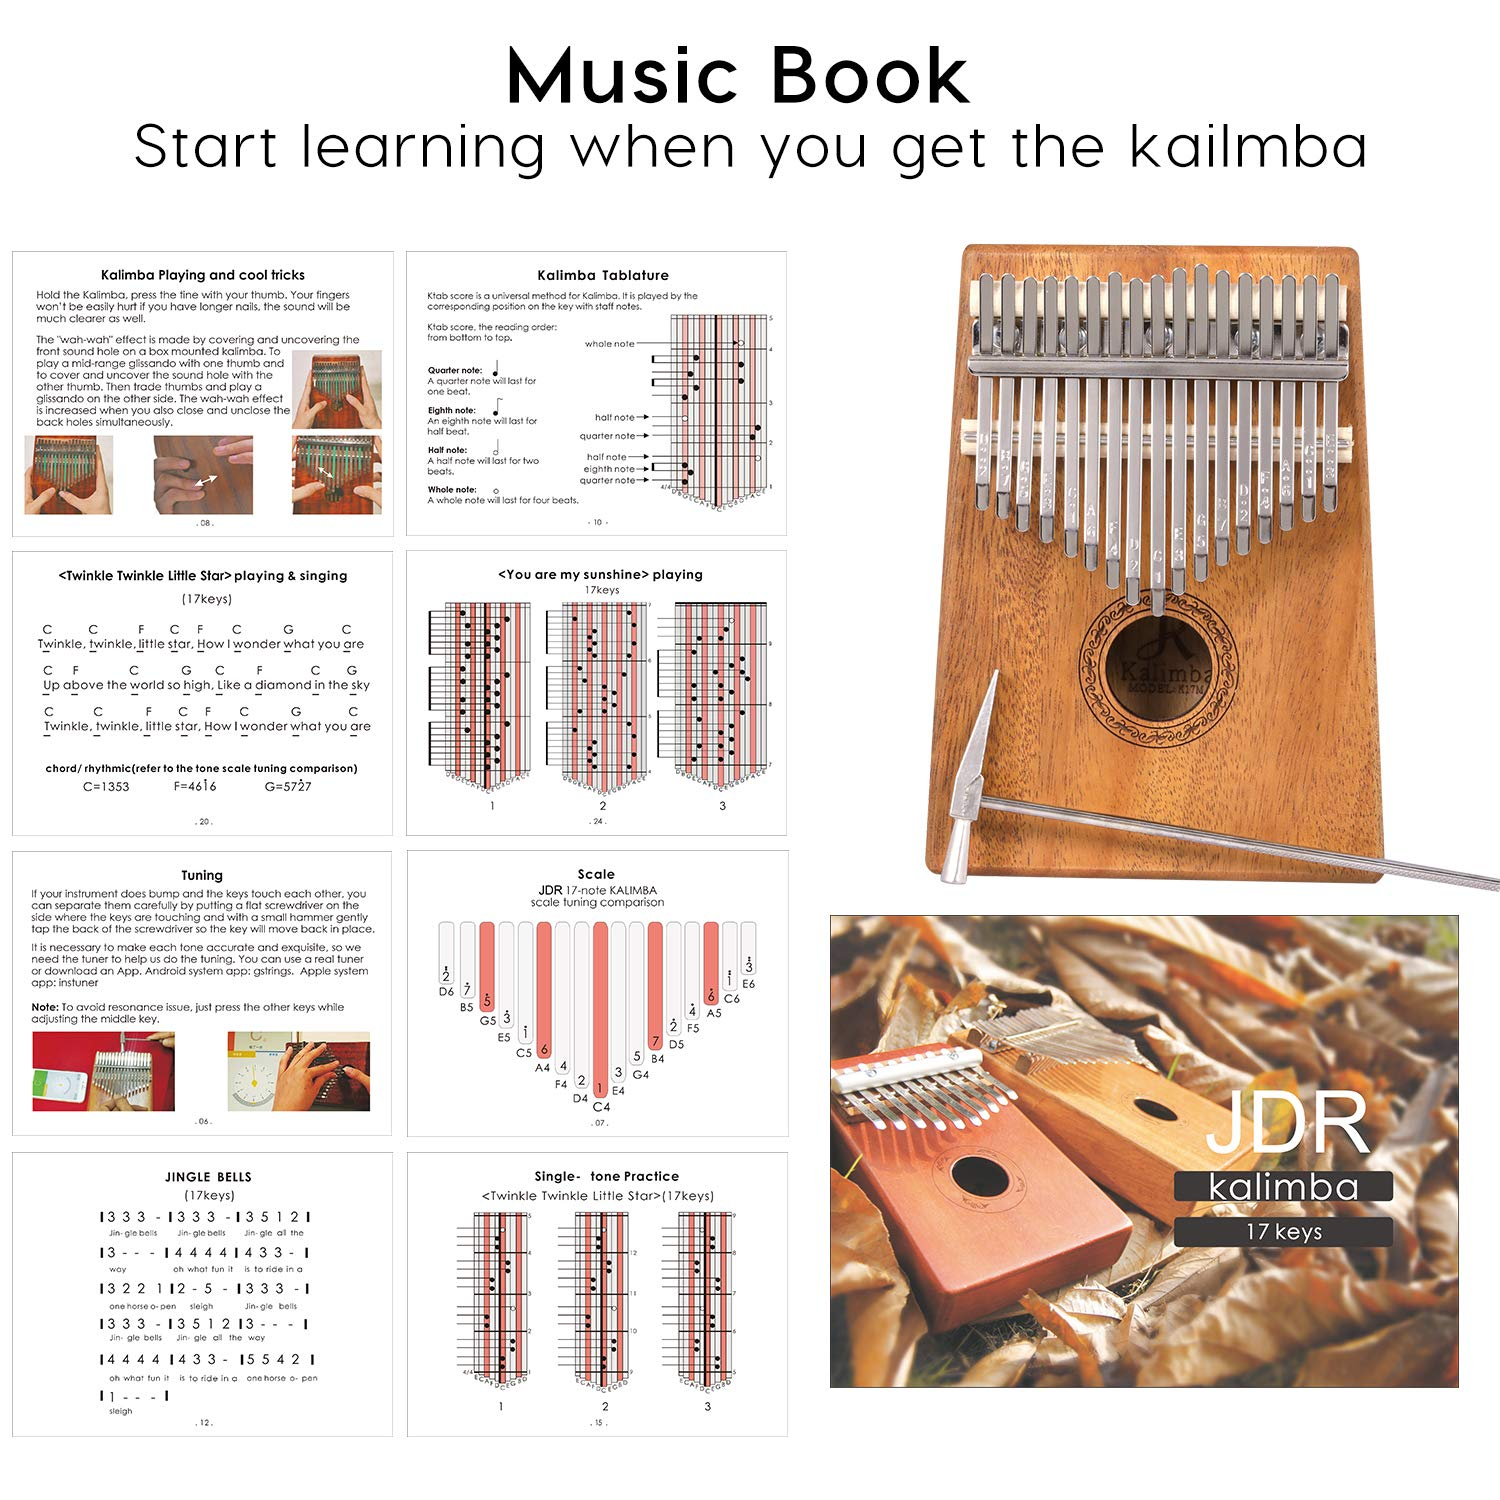 JDR 17 Keys kalimba, Thumb Piano with EVA Waterproof Hard Protective Case, Tuning Hammer and Music book, Unique and great birthday gift for musicians or kids without any musical basis by JDR (Image #4)